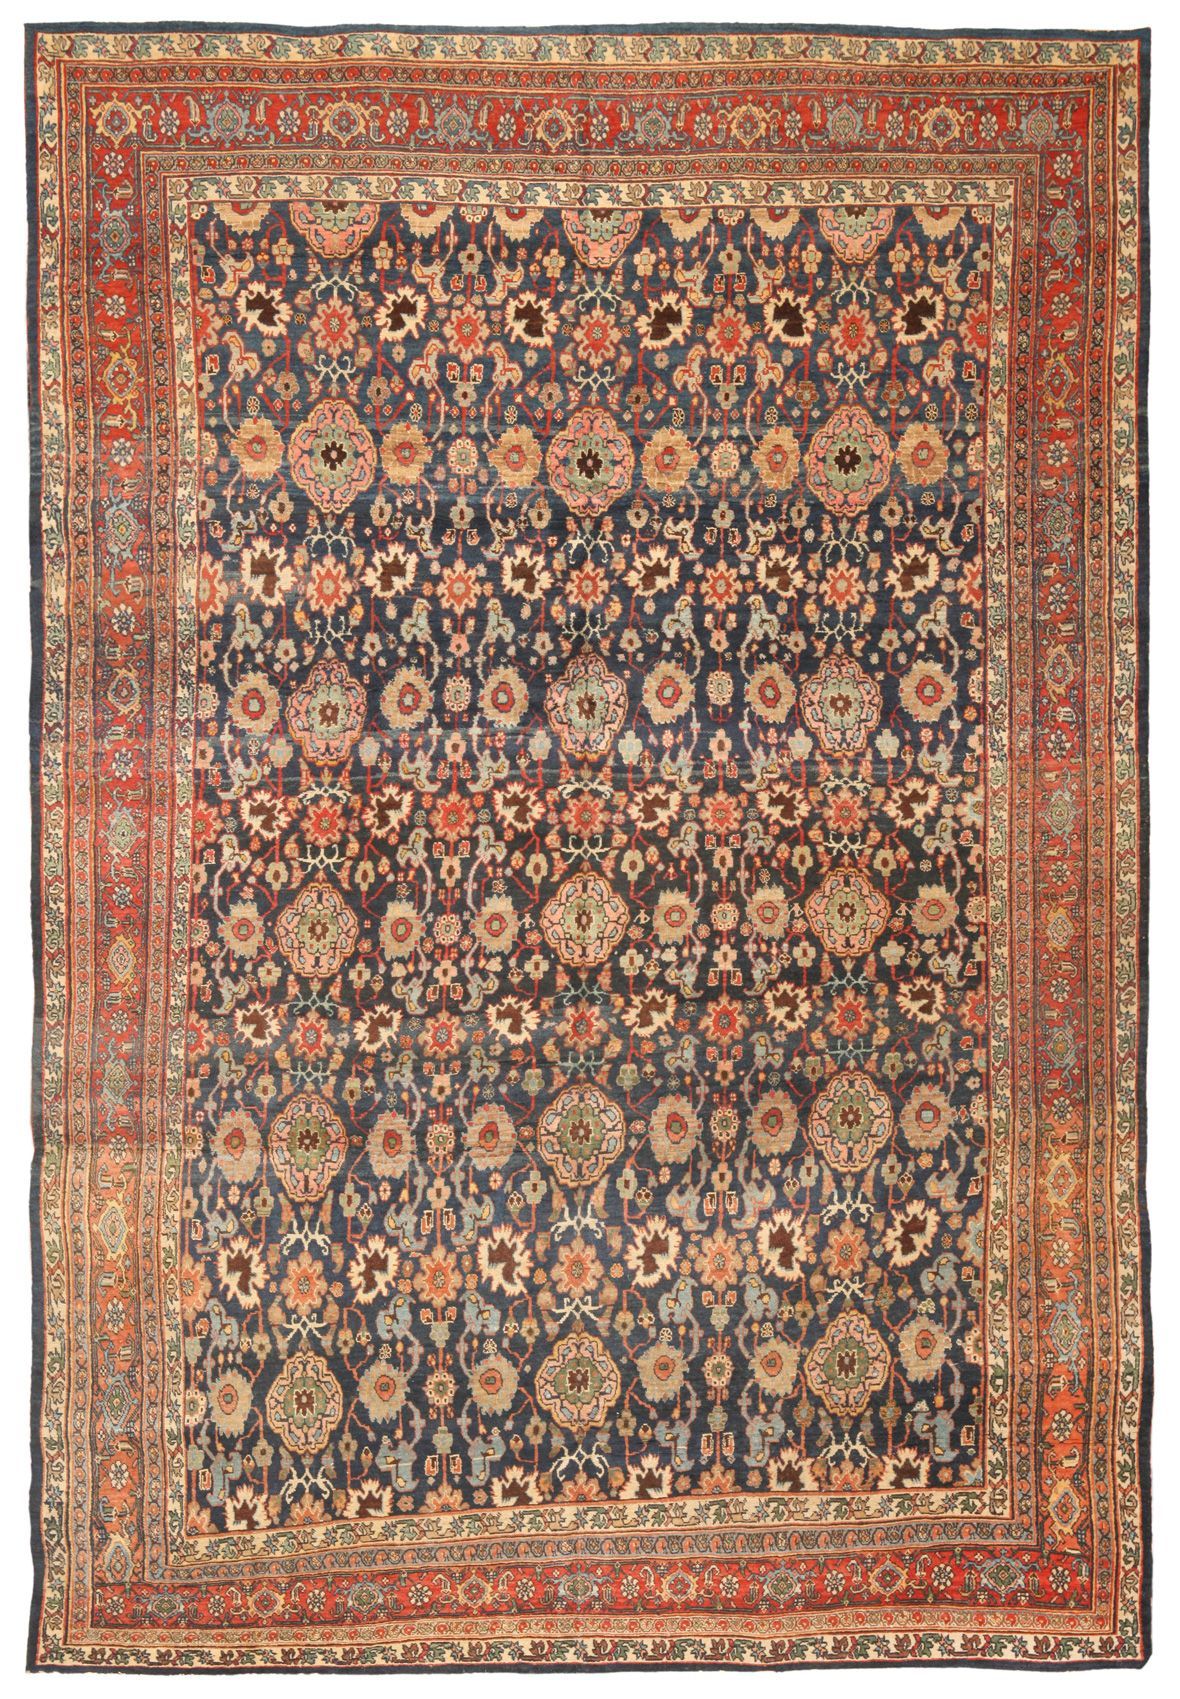 Bijar Tapijt Antique Bidjar Carpet Tapijten Uit Perzie Rugs Carpet En